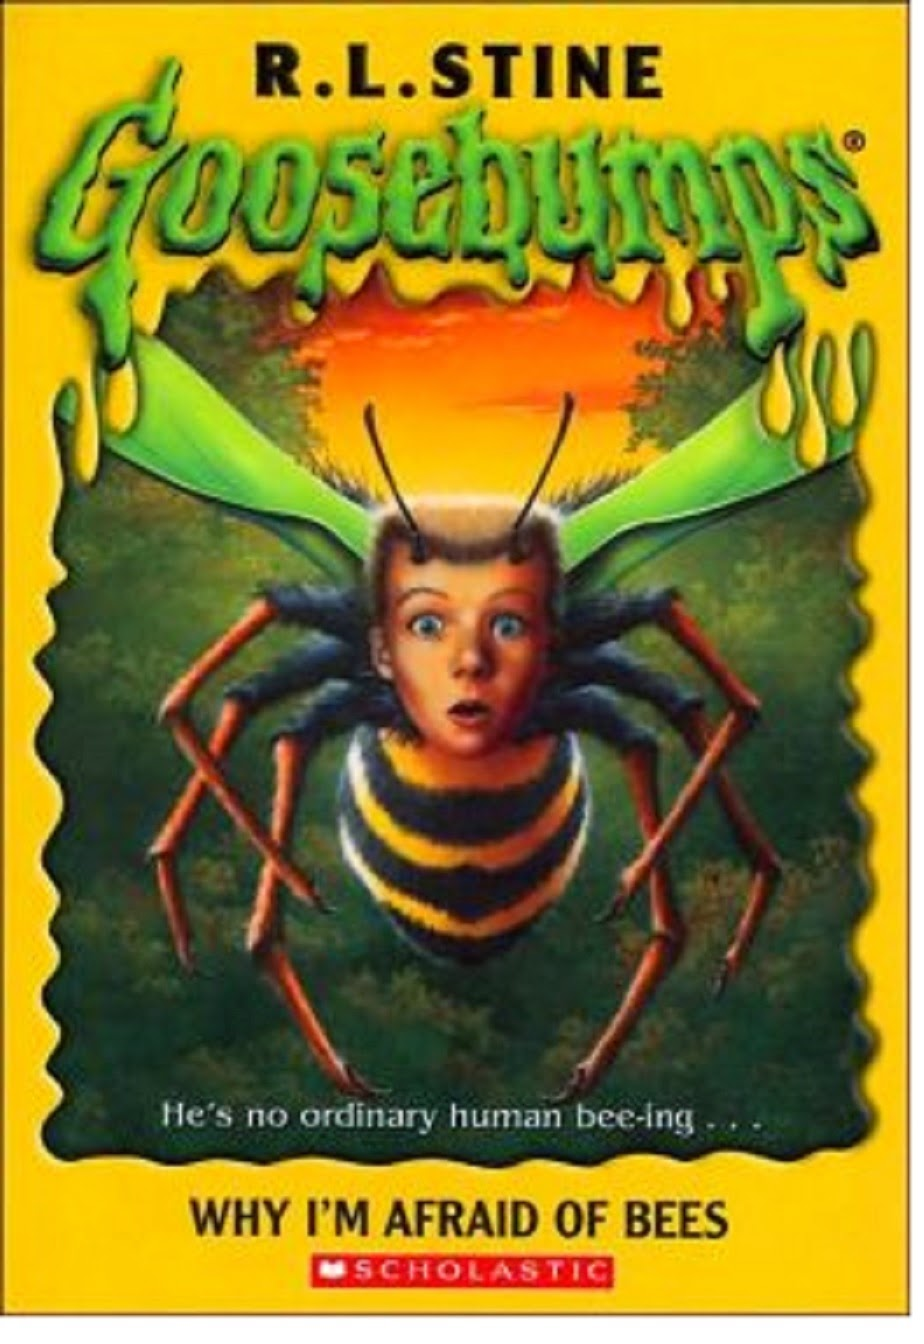 a summary of why i am afraid of bees by rl stine When you were a kid and rl stine's books scared you why i'm afraid of bees for rl stine's goosebumps get the minimalist treatment with these posters.